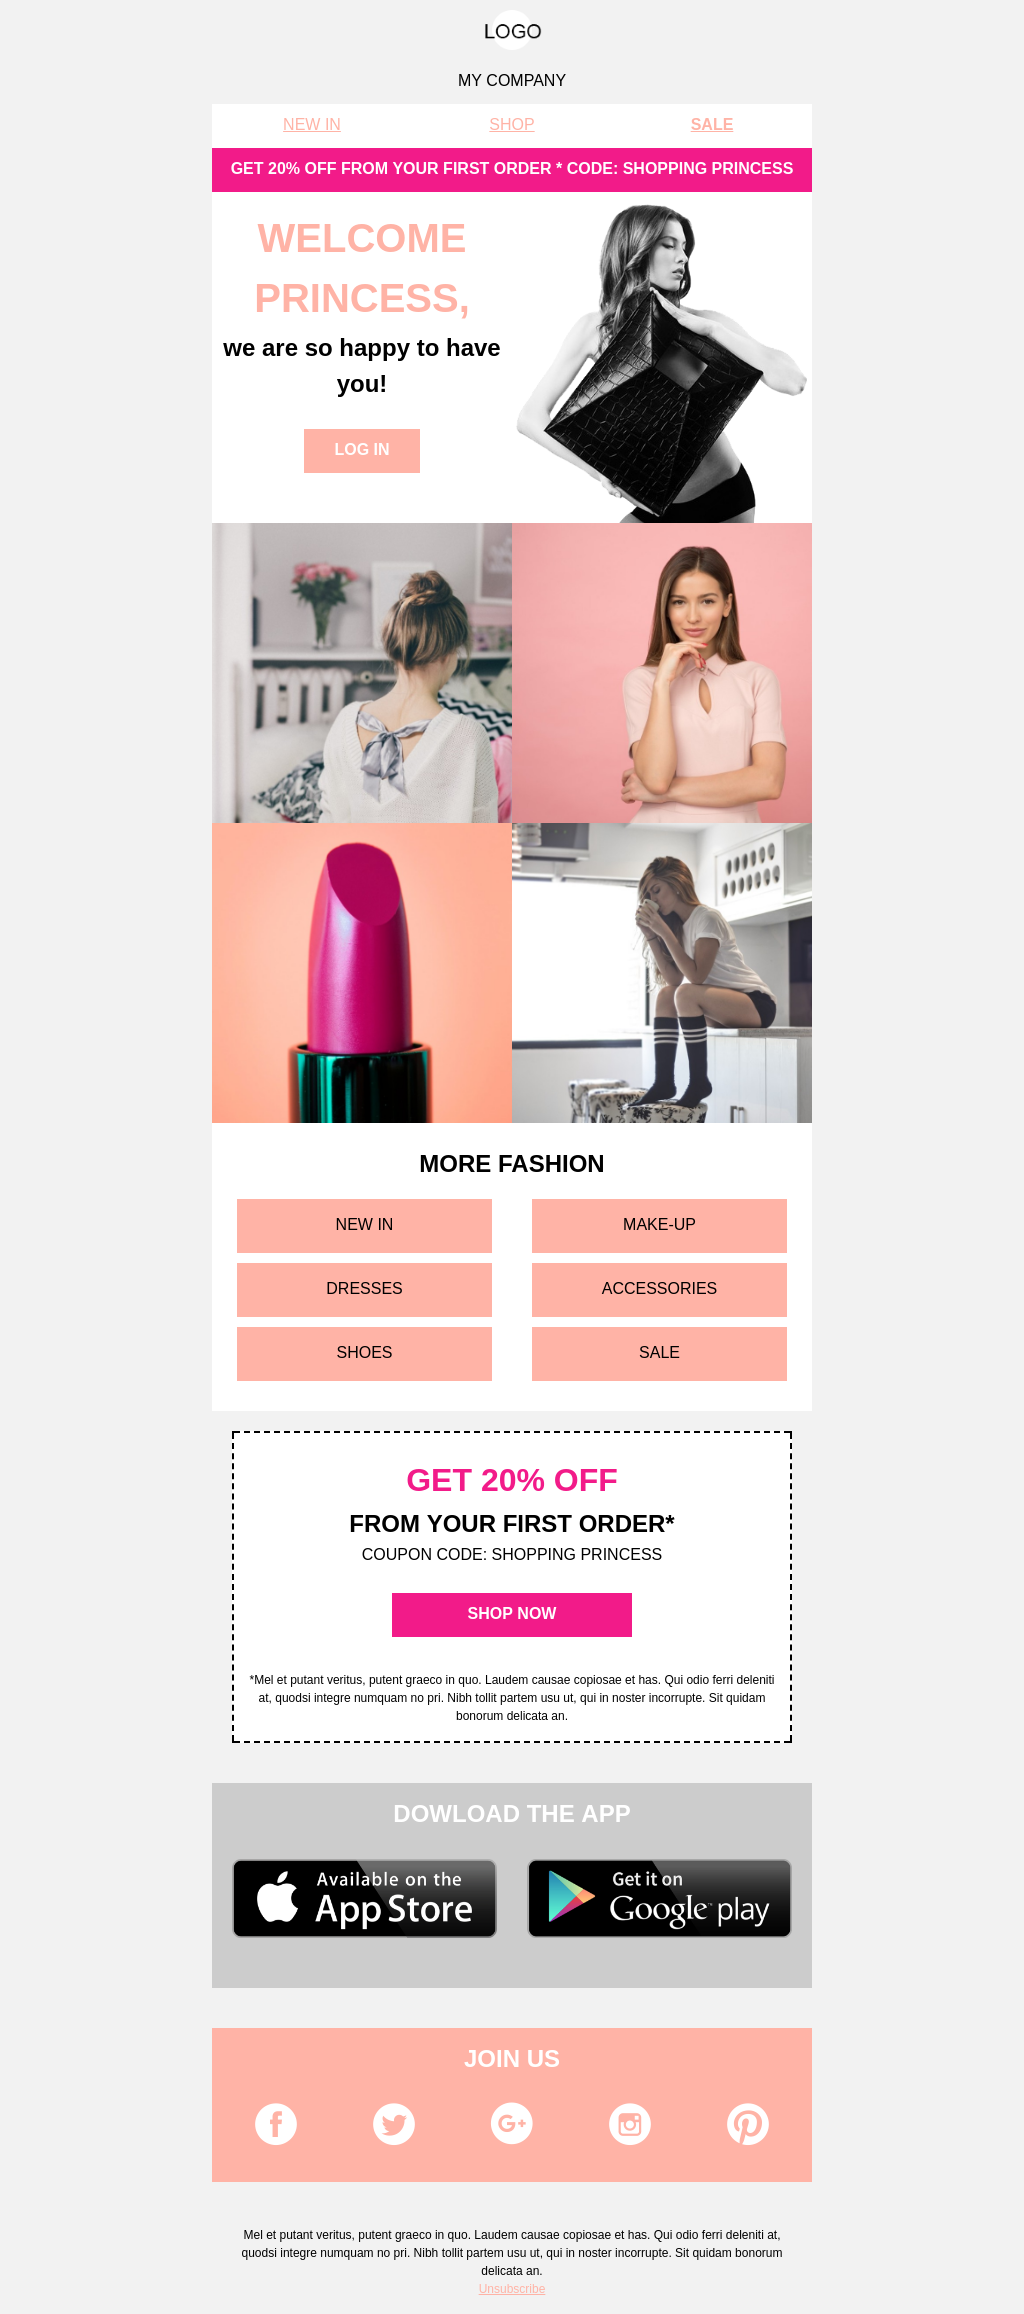 Responsive Welcome Email Template for Shopping Princess-es